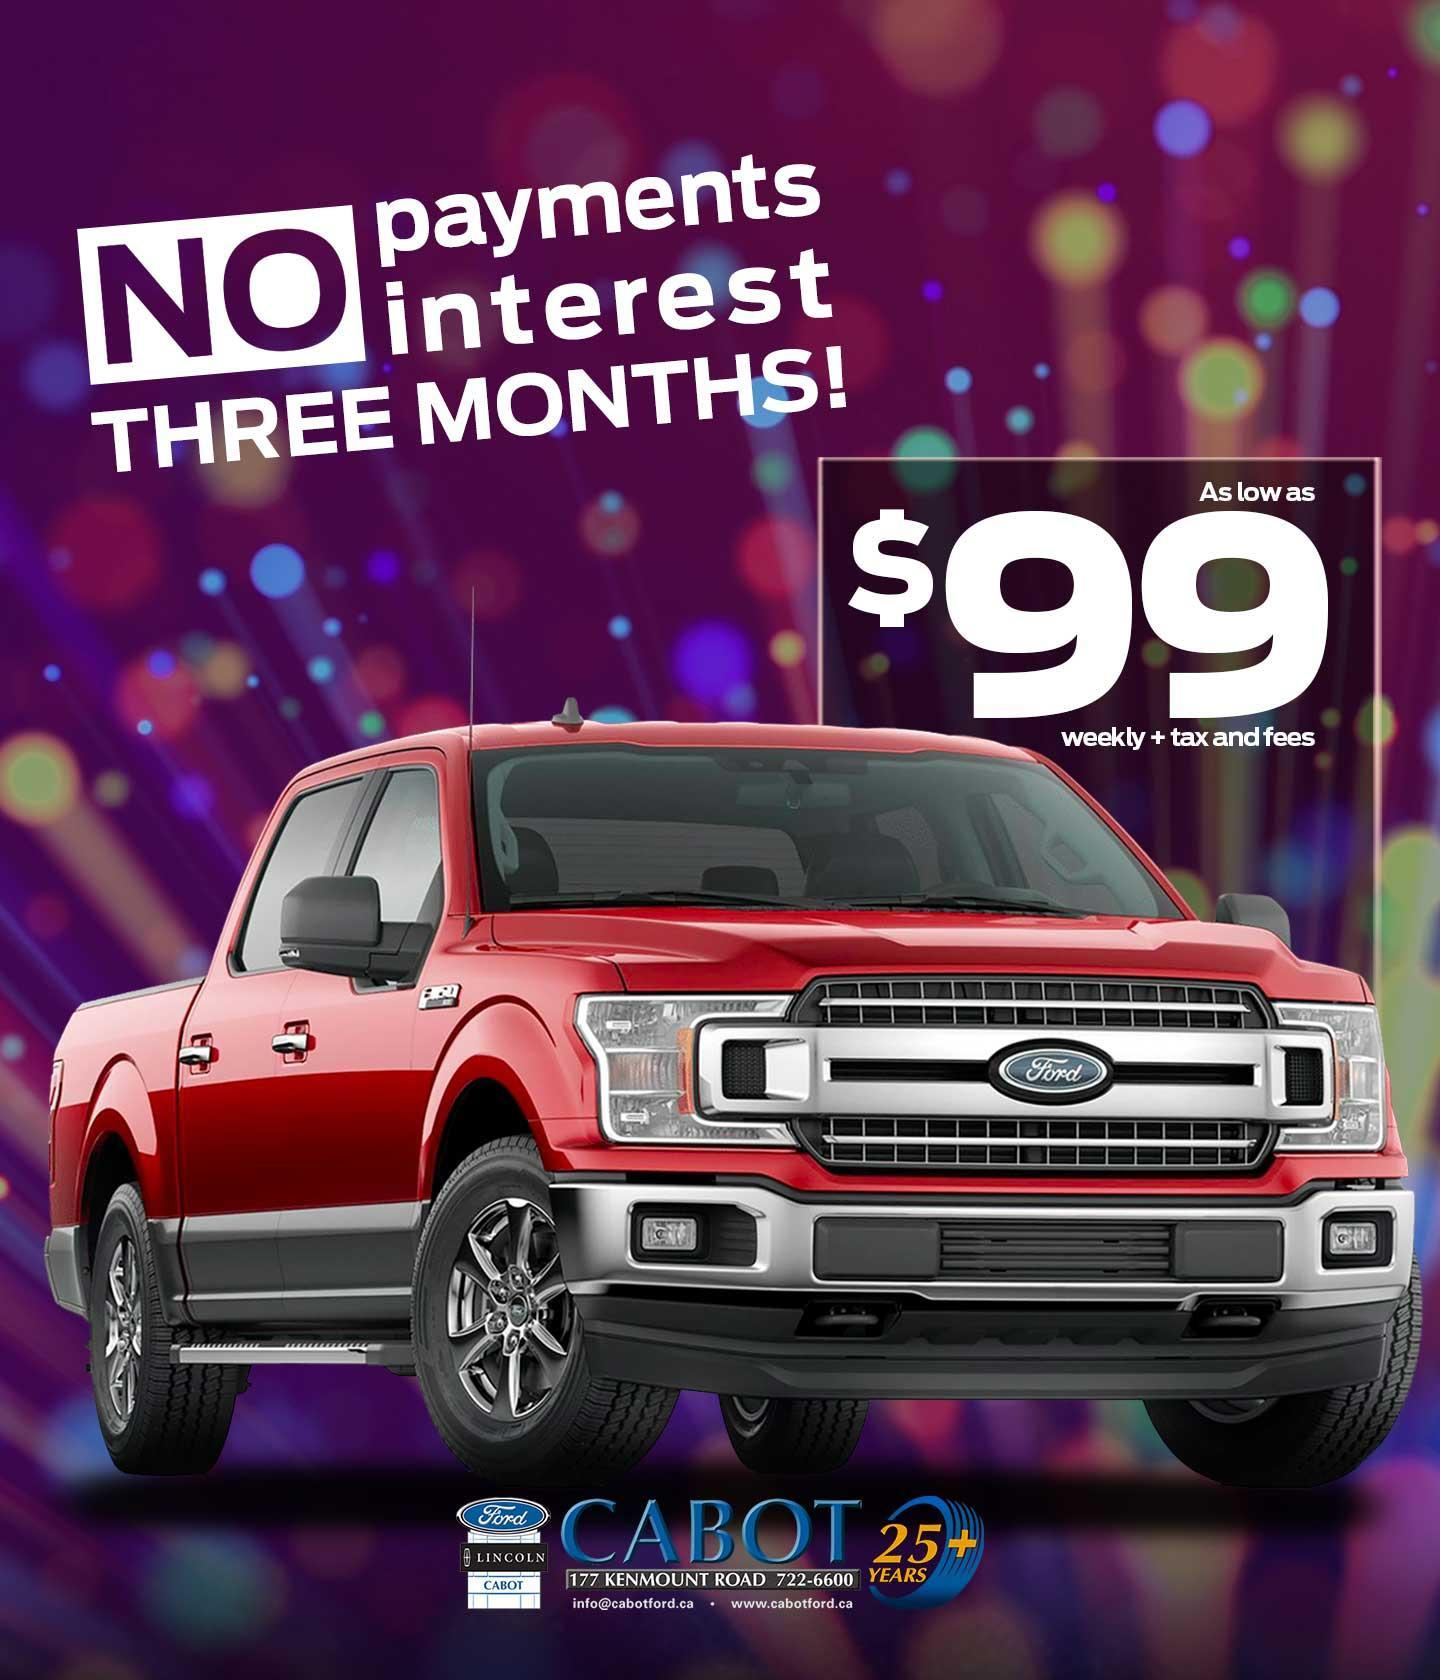 Get a 2019 F-150 XLT CrewCab 4x4, XTR pkg & power group, as low as $99 weekly + tax & fees! NO PAYMENTS OR INTEREST FOR THREE MONTHS!